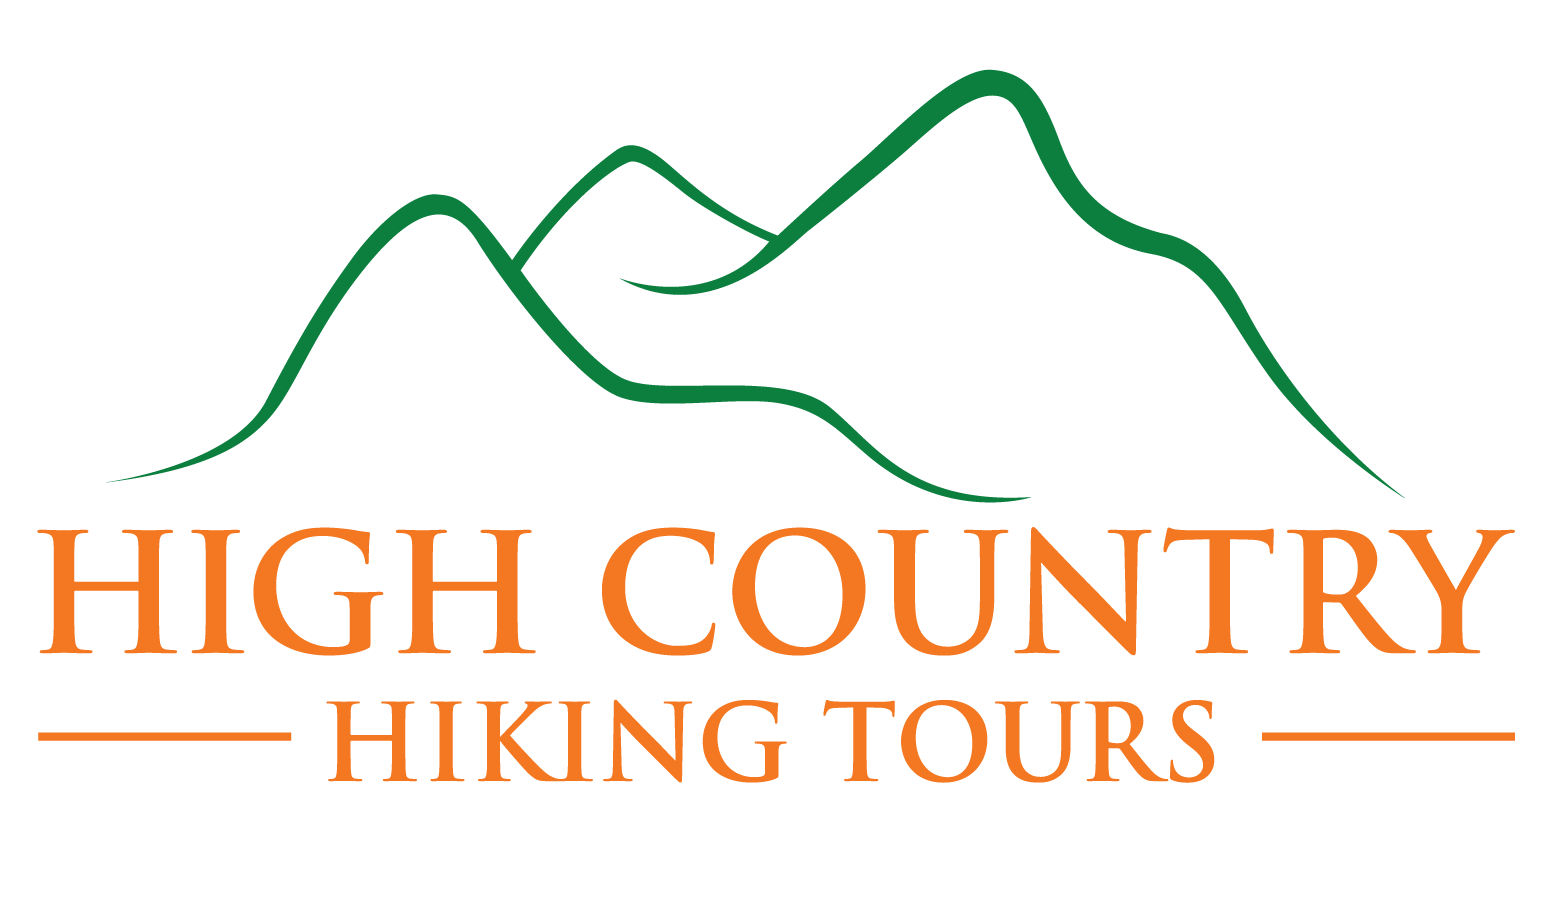 High Country Hiking Tours